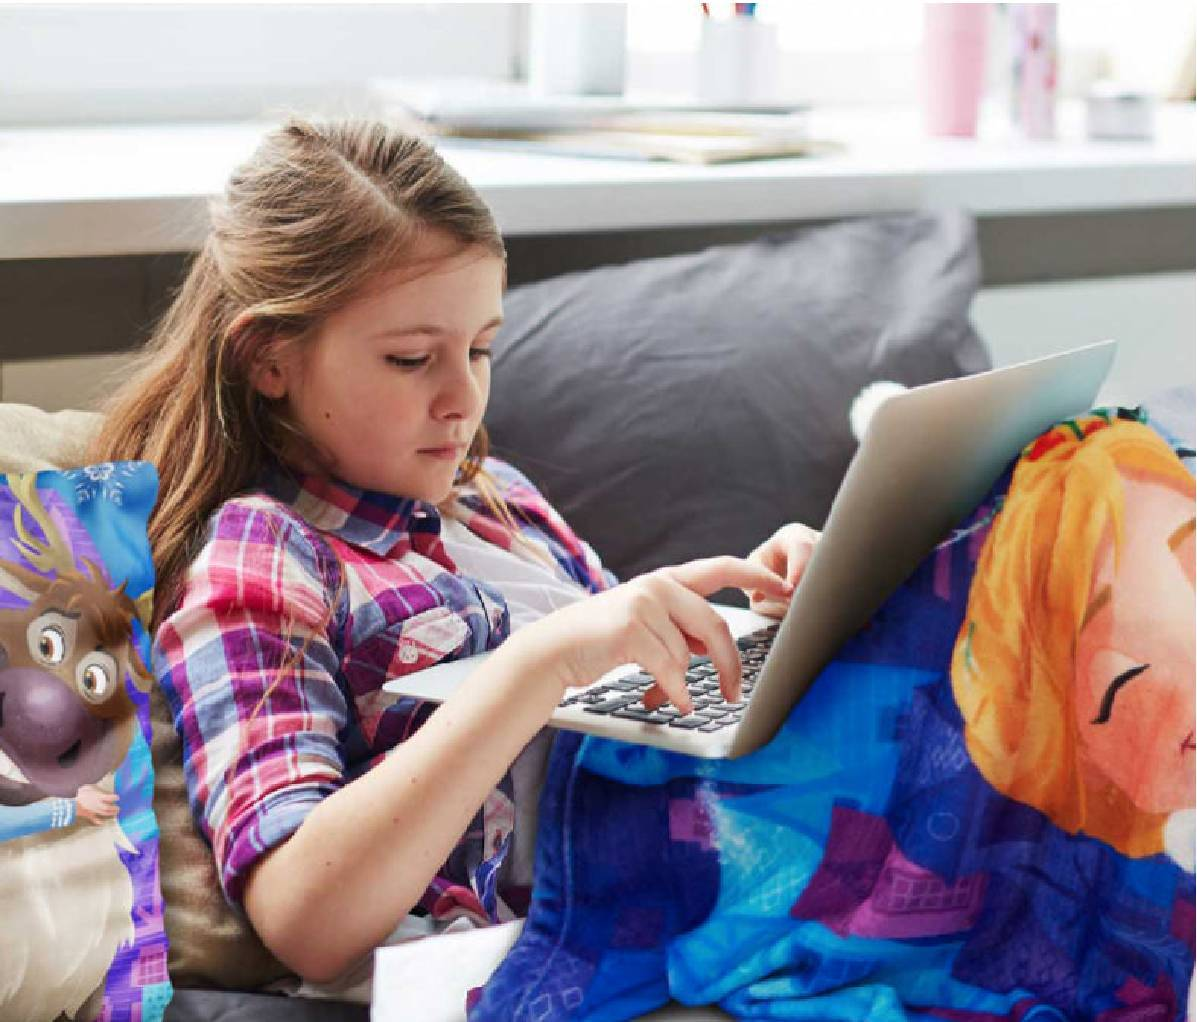 Young girl on laptop in Disney bedding